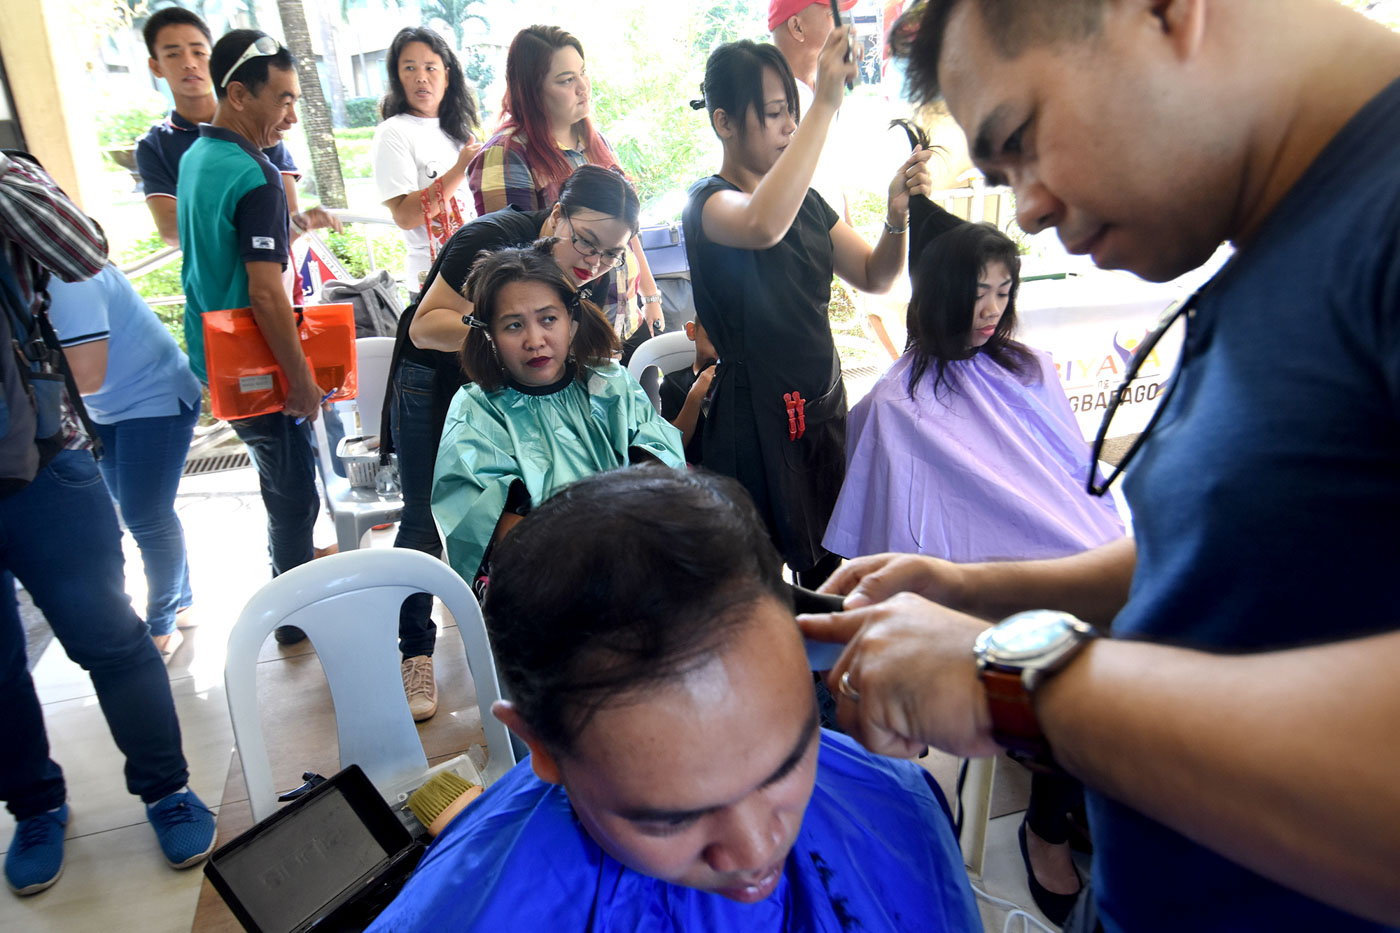 Some jobseekers grabbed the free haircut from TESDA graduates after they applied. Photo by Angie de Silva/Rappler